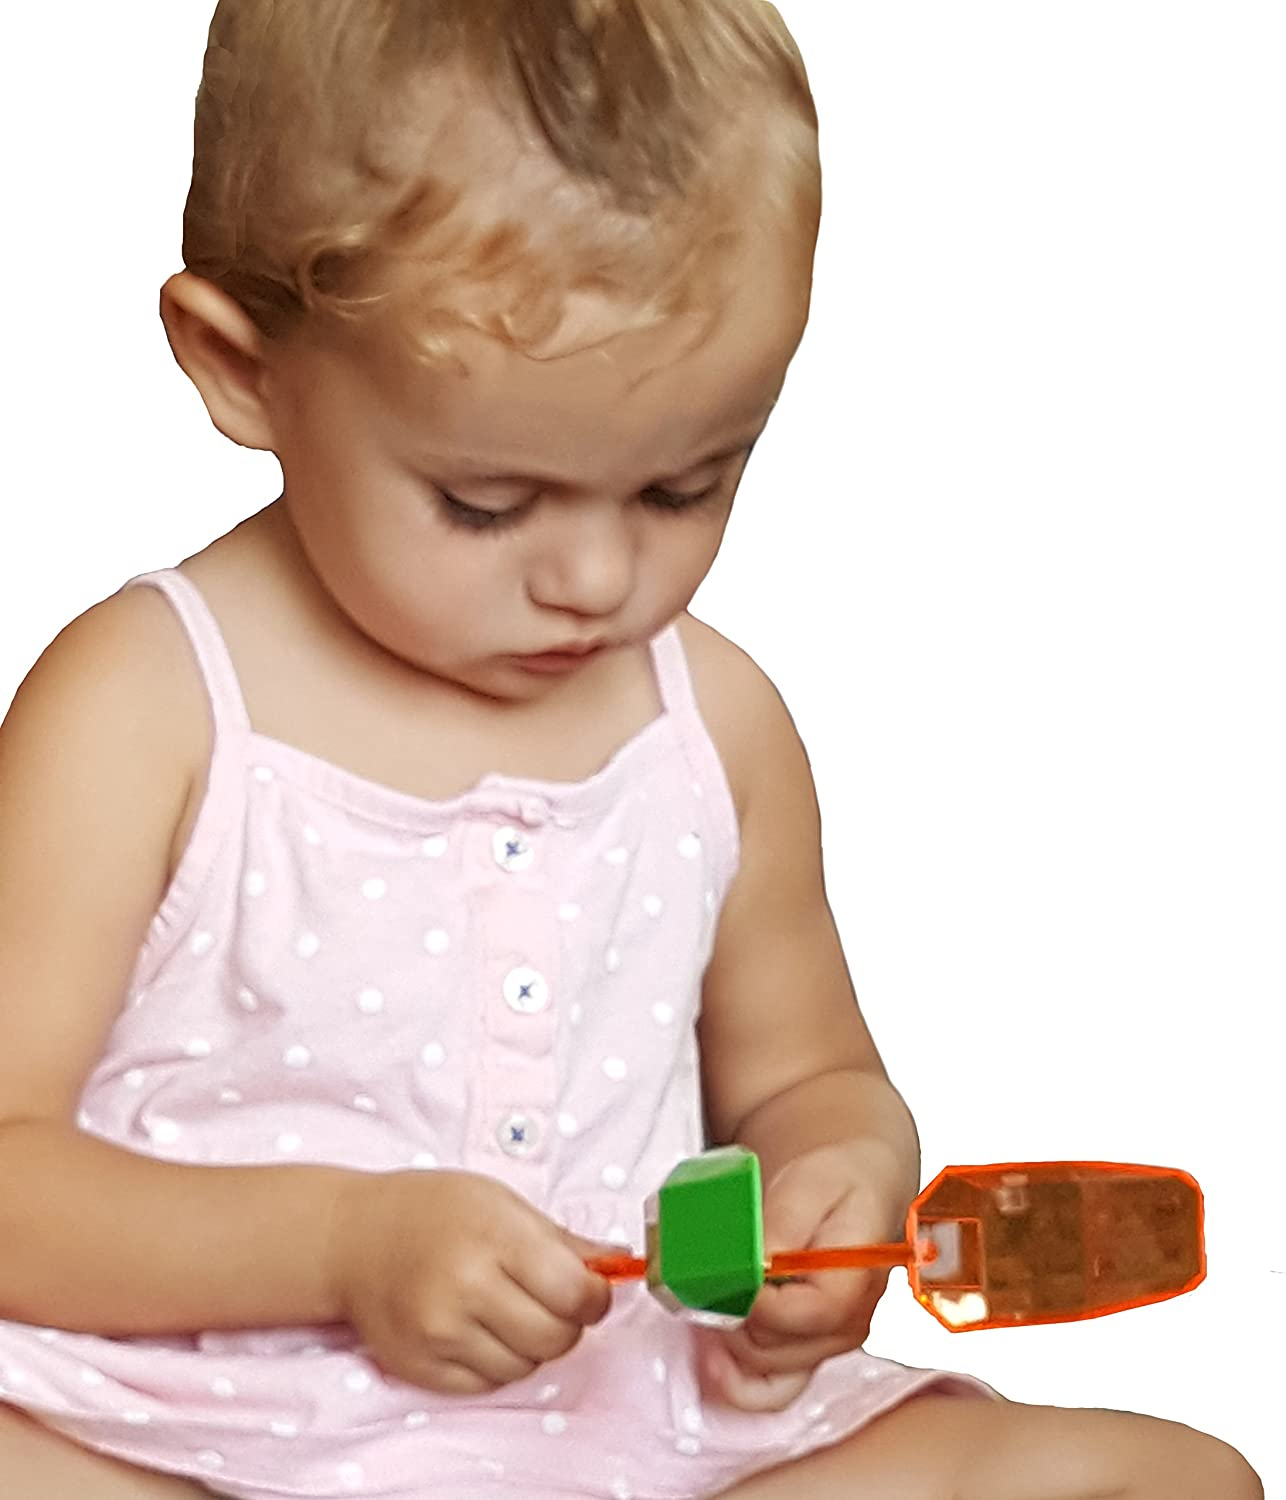 Scoop Tongs and Color Bear Dice Skoolzy Toddler Toys Fine Motor Tools Set Learning /& Educational Montessori Manipulative Toys